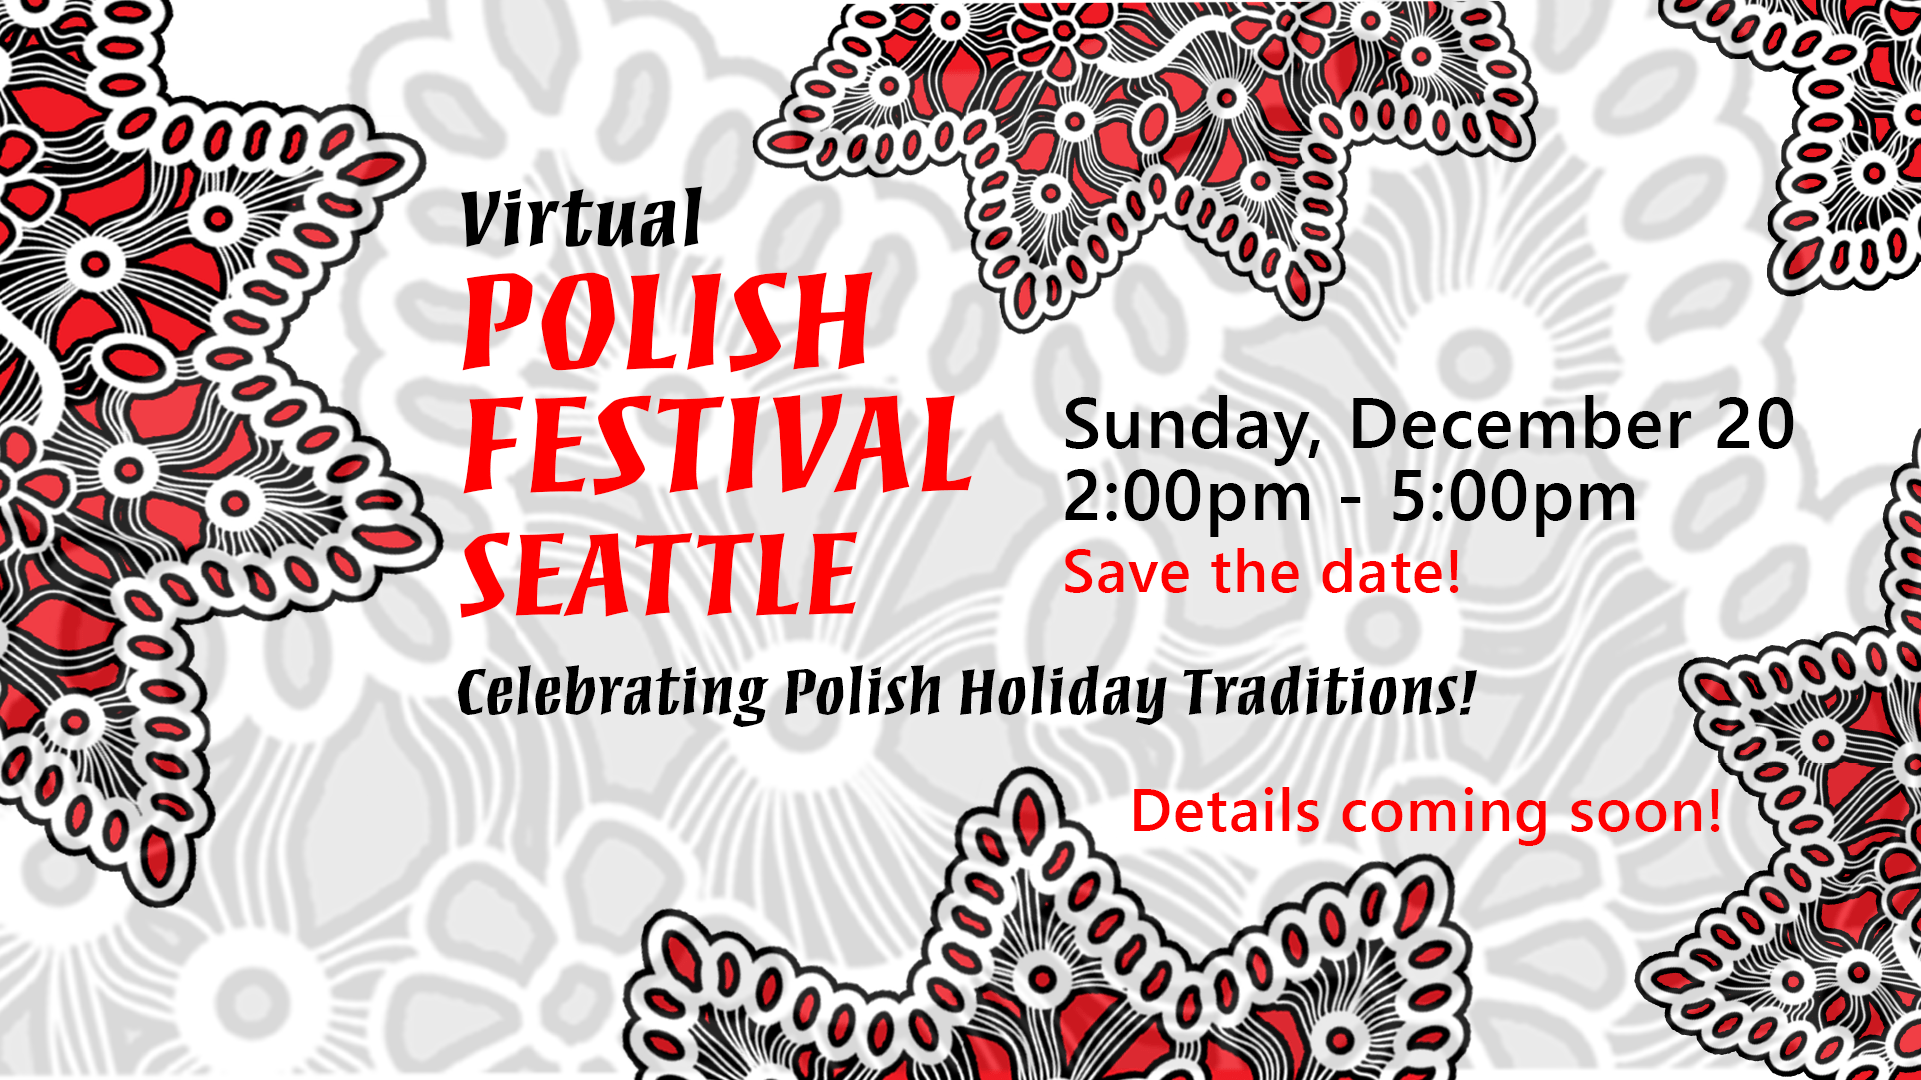 Help with the Virtual Polish Festival Seattle Holiday Edition!